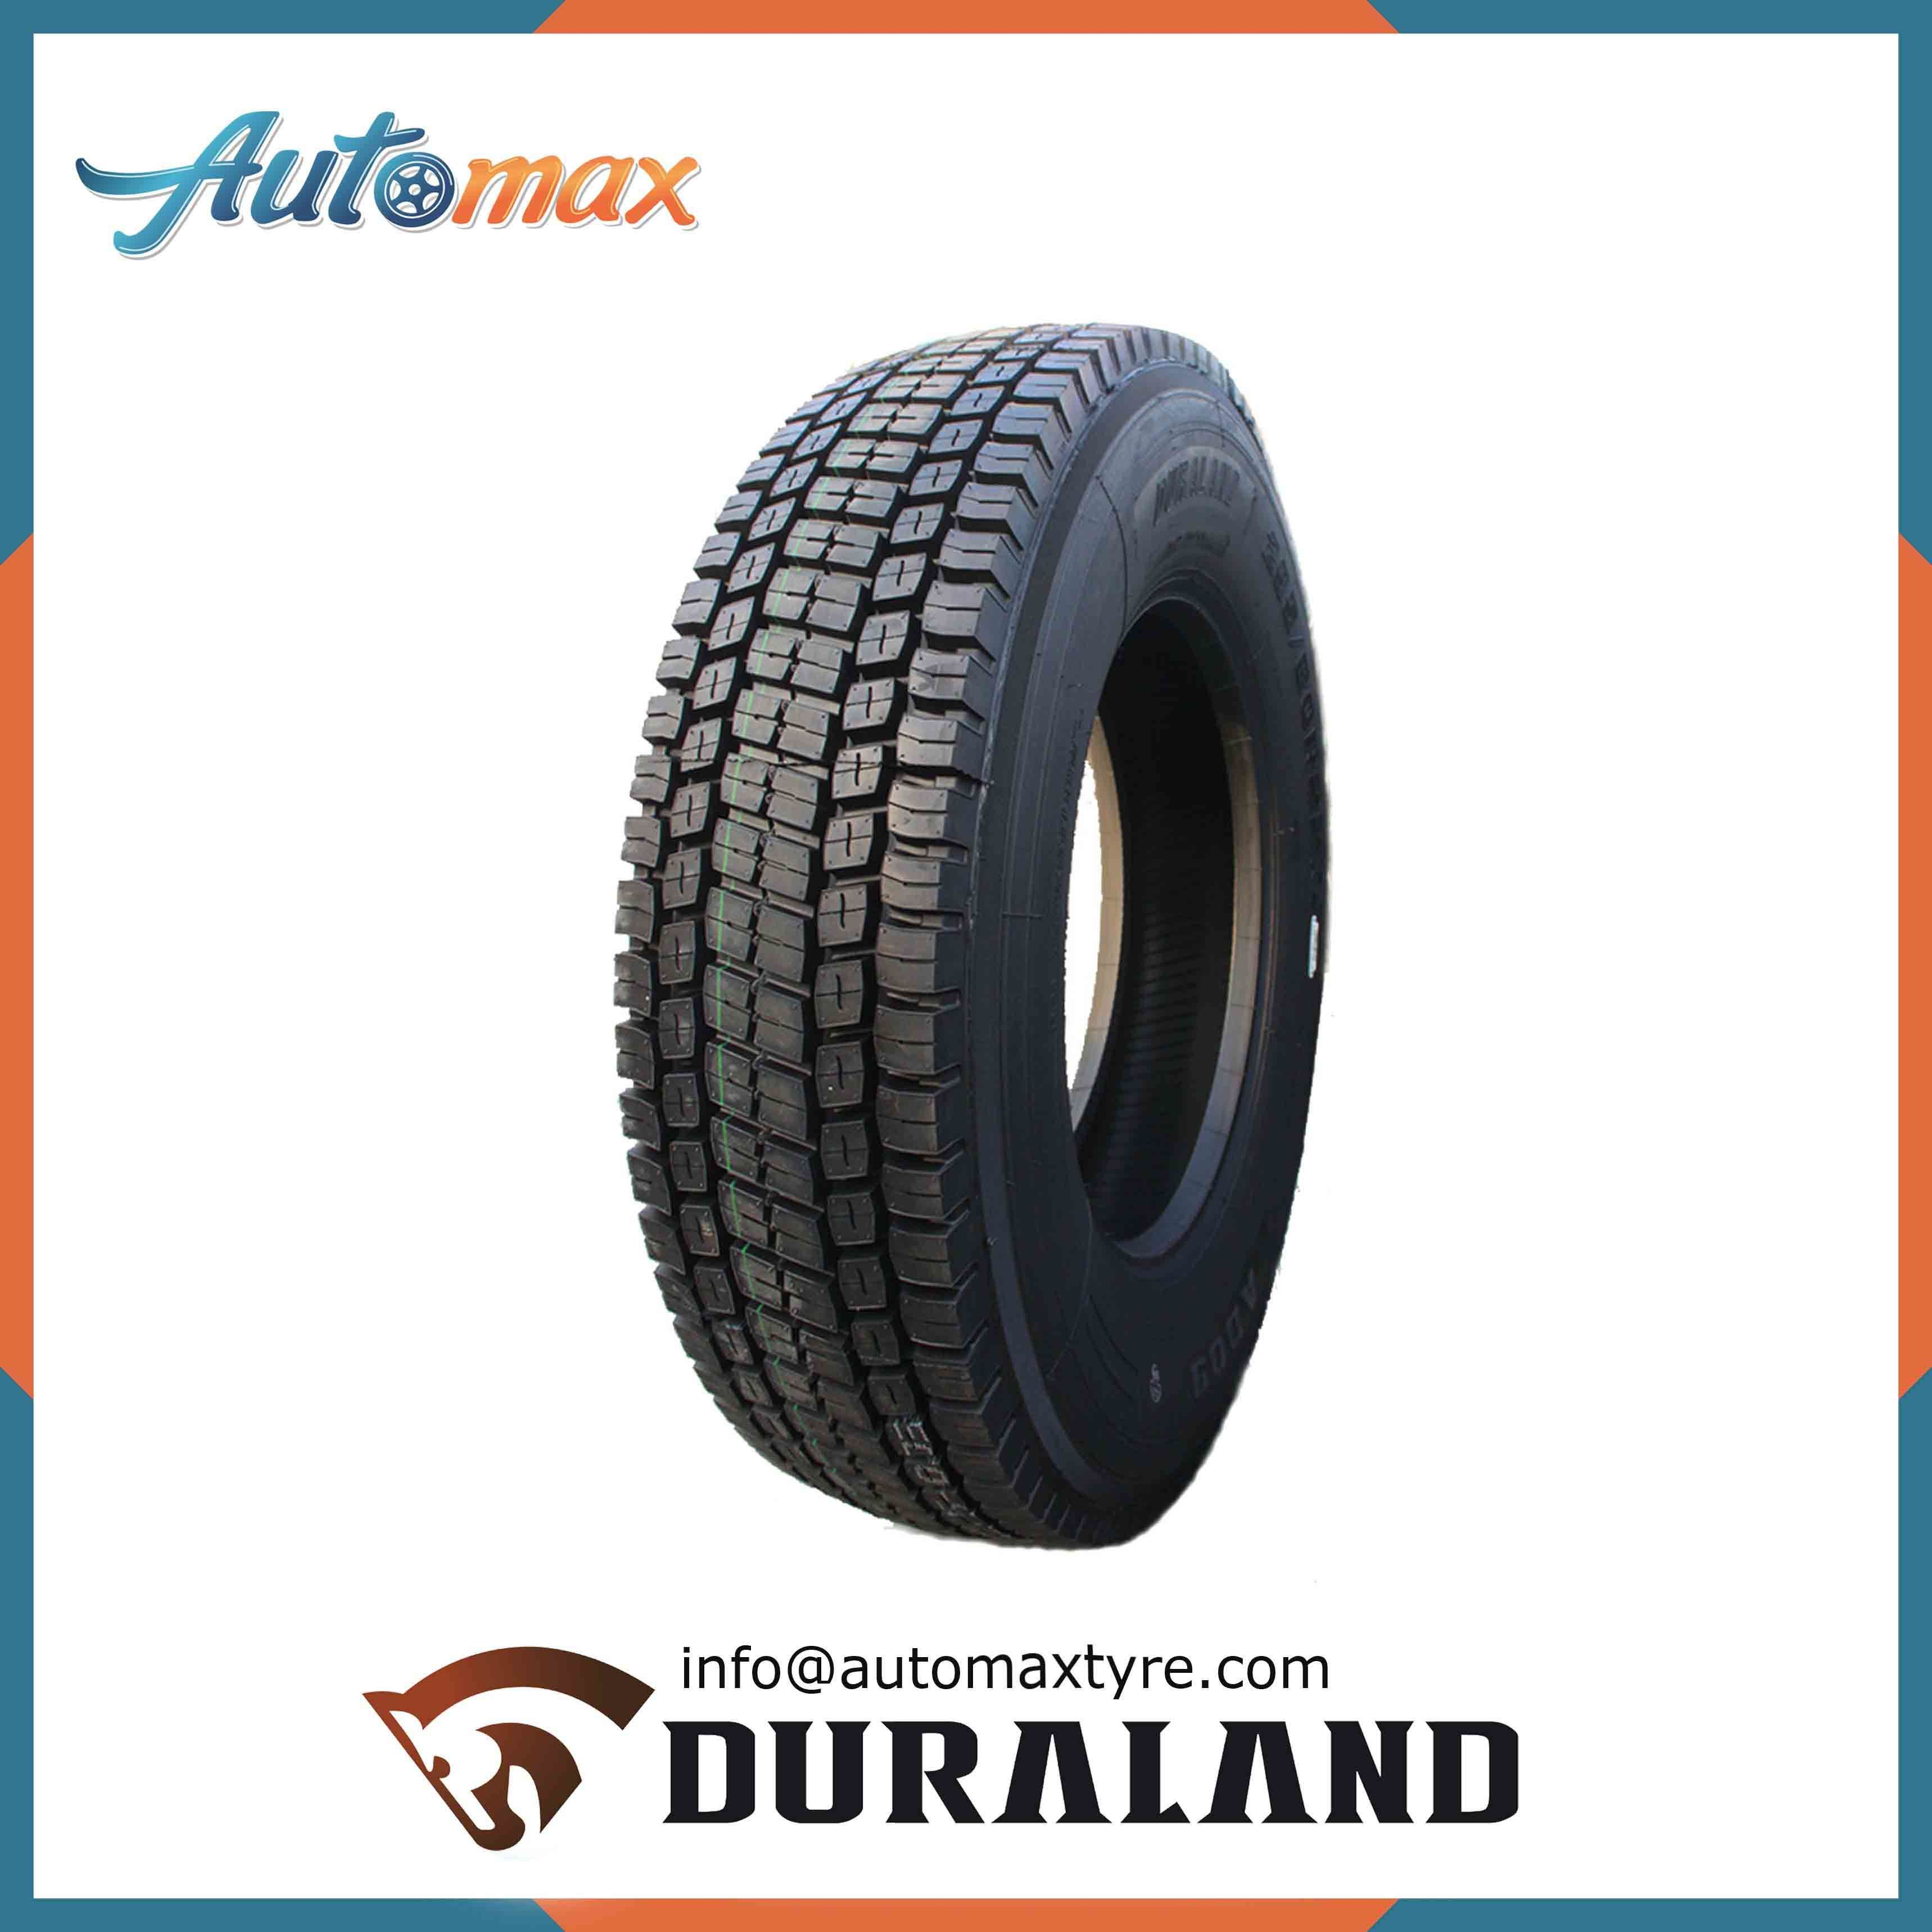 Duraland 295/80r22.5 Ad09 Radial Truck Tyre